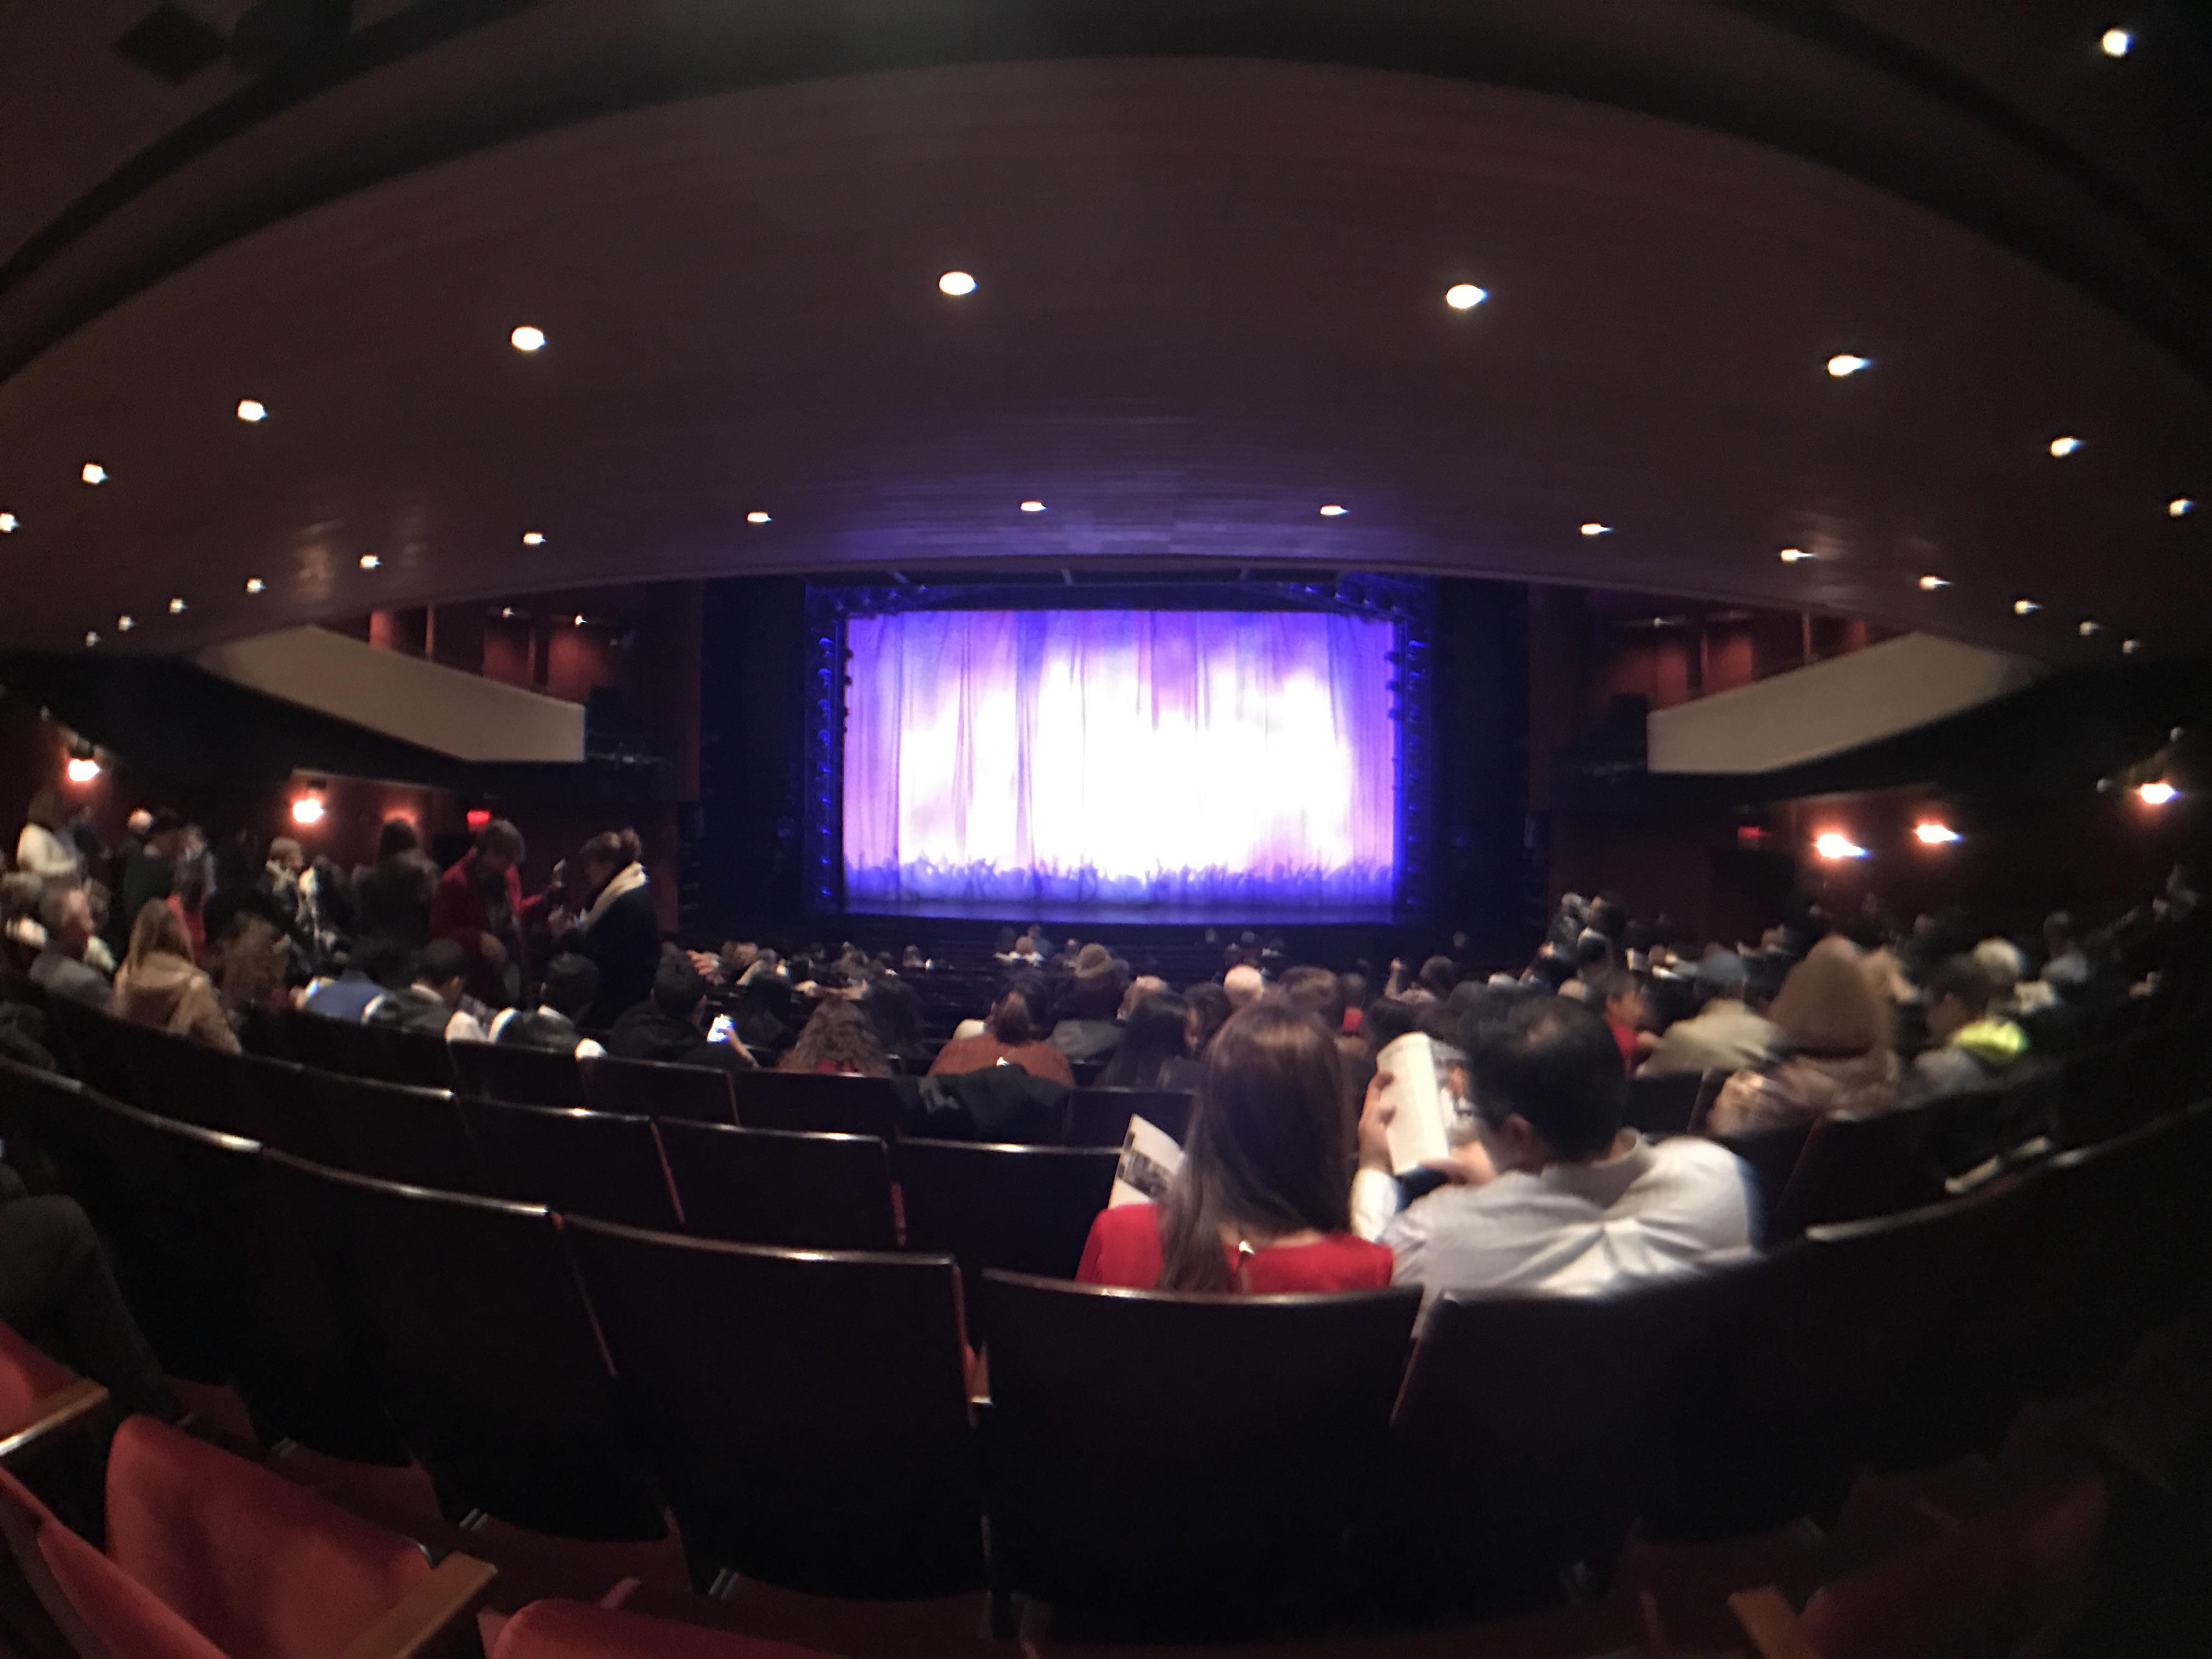 Marquis Theatre Section Orchestra R Row V Seat 114